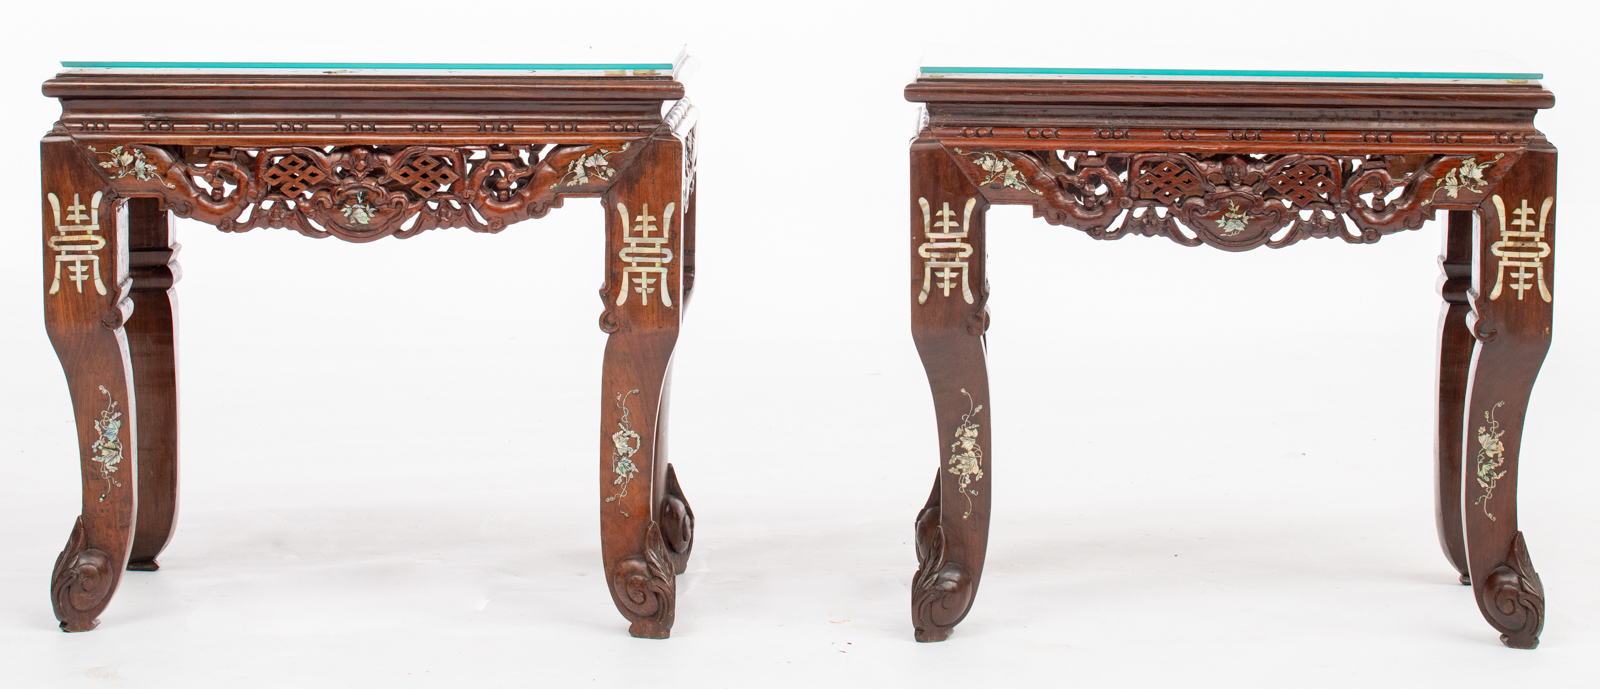 Lot 446 - A fine Chinese exotic hardwood salon set, consisting of four armchairs, one coffee table and two sid